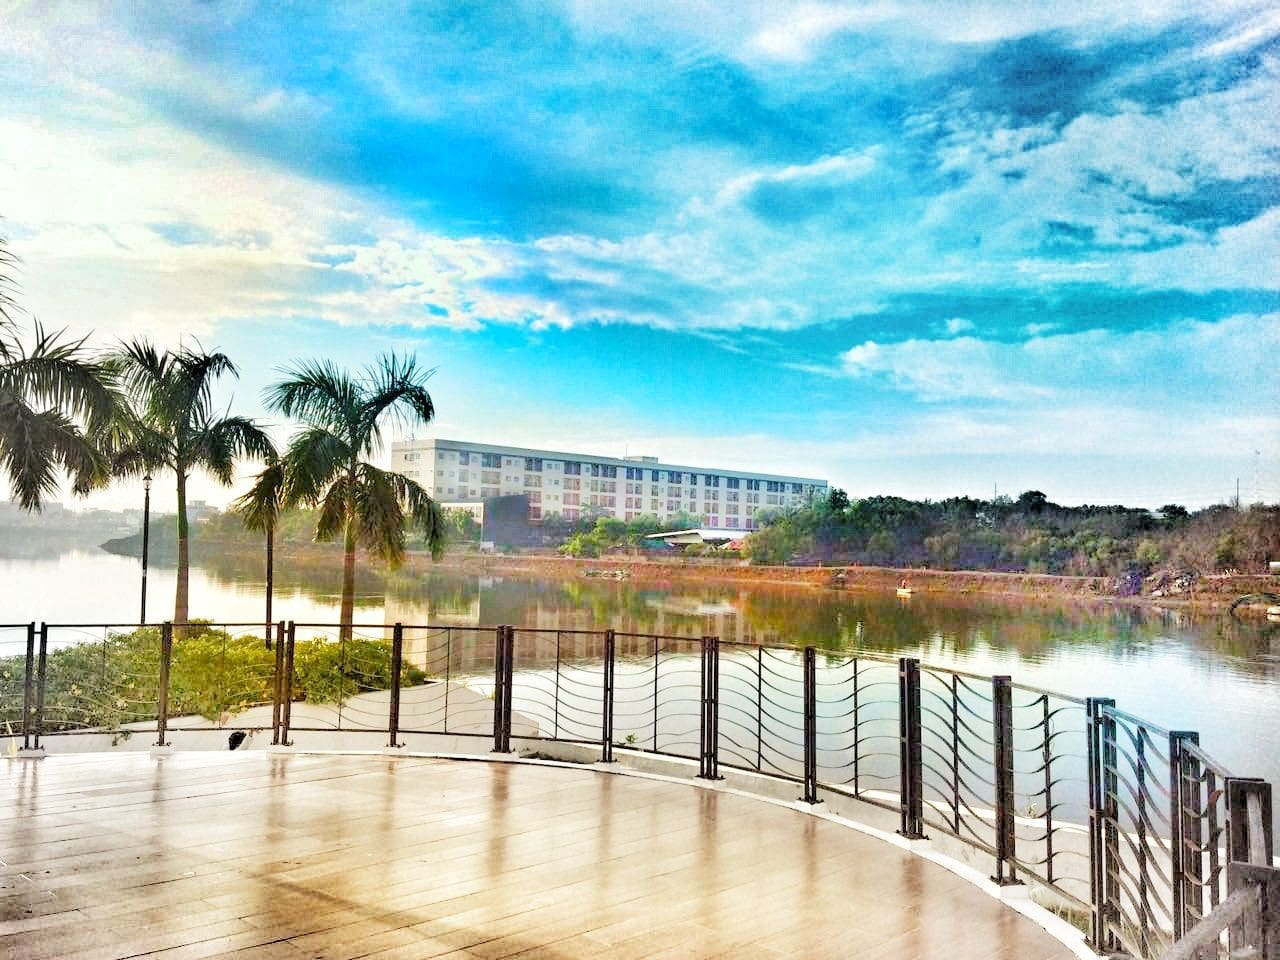 Morning view beside Iloilo River